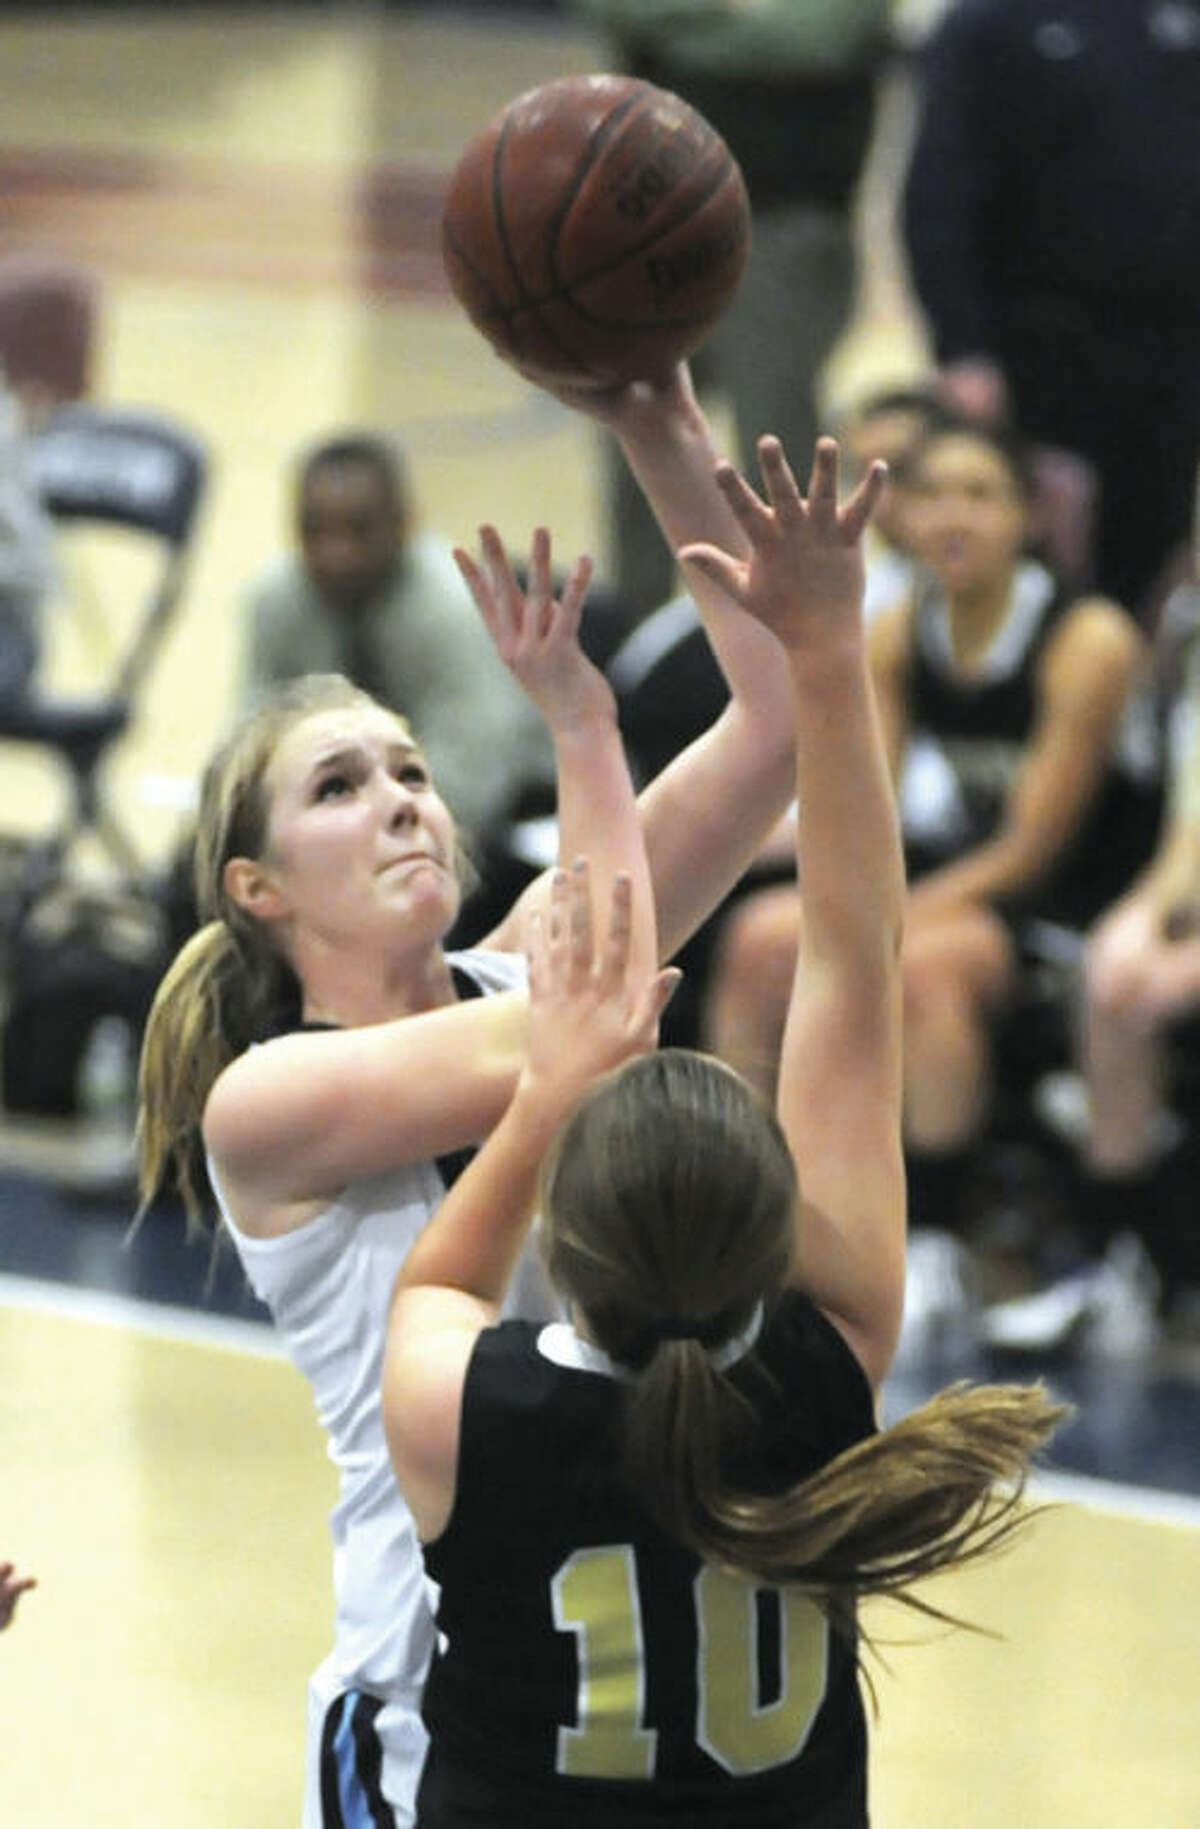 Hour photo/John Nash Wilton's Erin Cunningham, left, puts up a shot over the defense of Trumbull's Kate O'Leary during Friday night's FCIAC girls basketball game at the Zeoli Field House. Wilton won the game, 43-31.